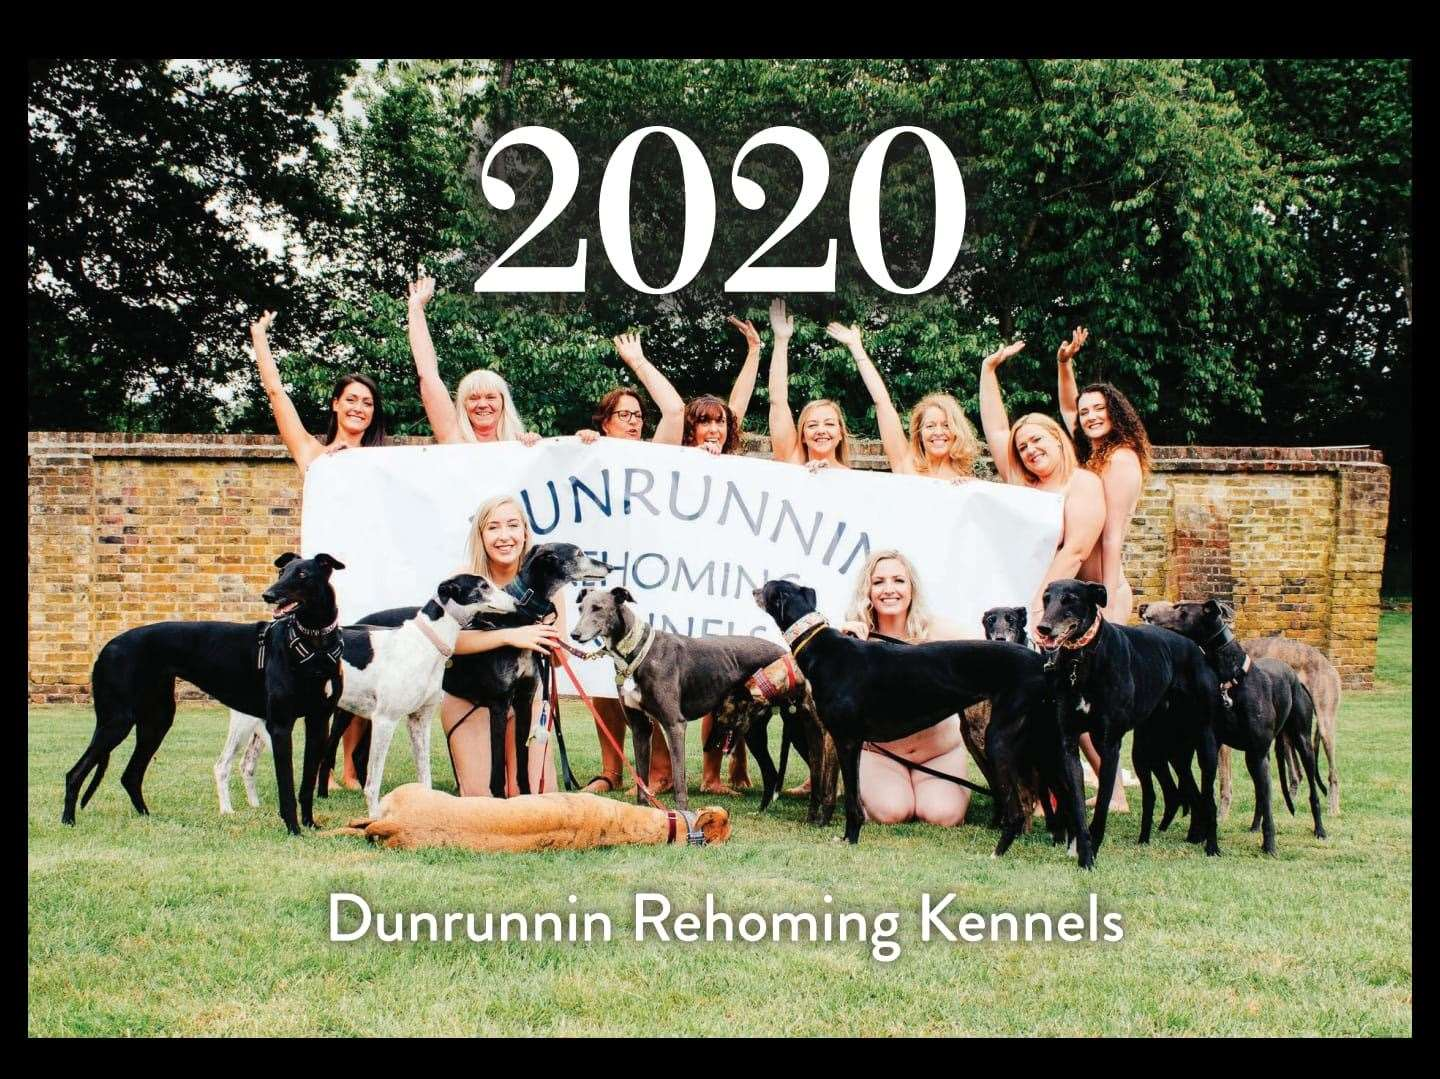 Greyhound lovers from Dunrunnin kennels are hoping to raise money to improve facitilies (19870898)